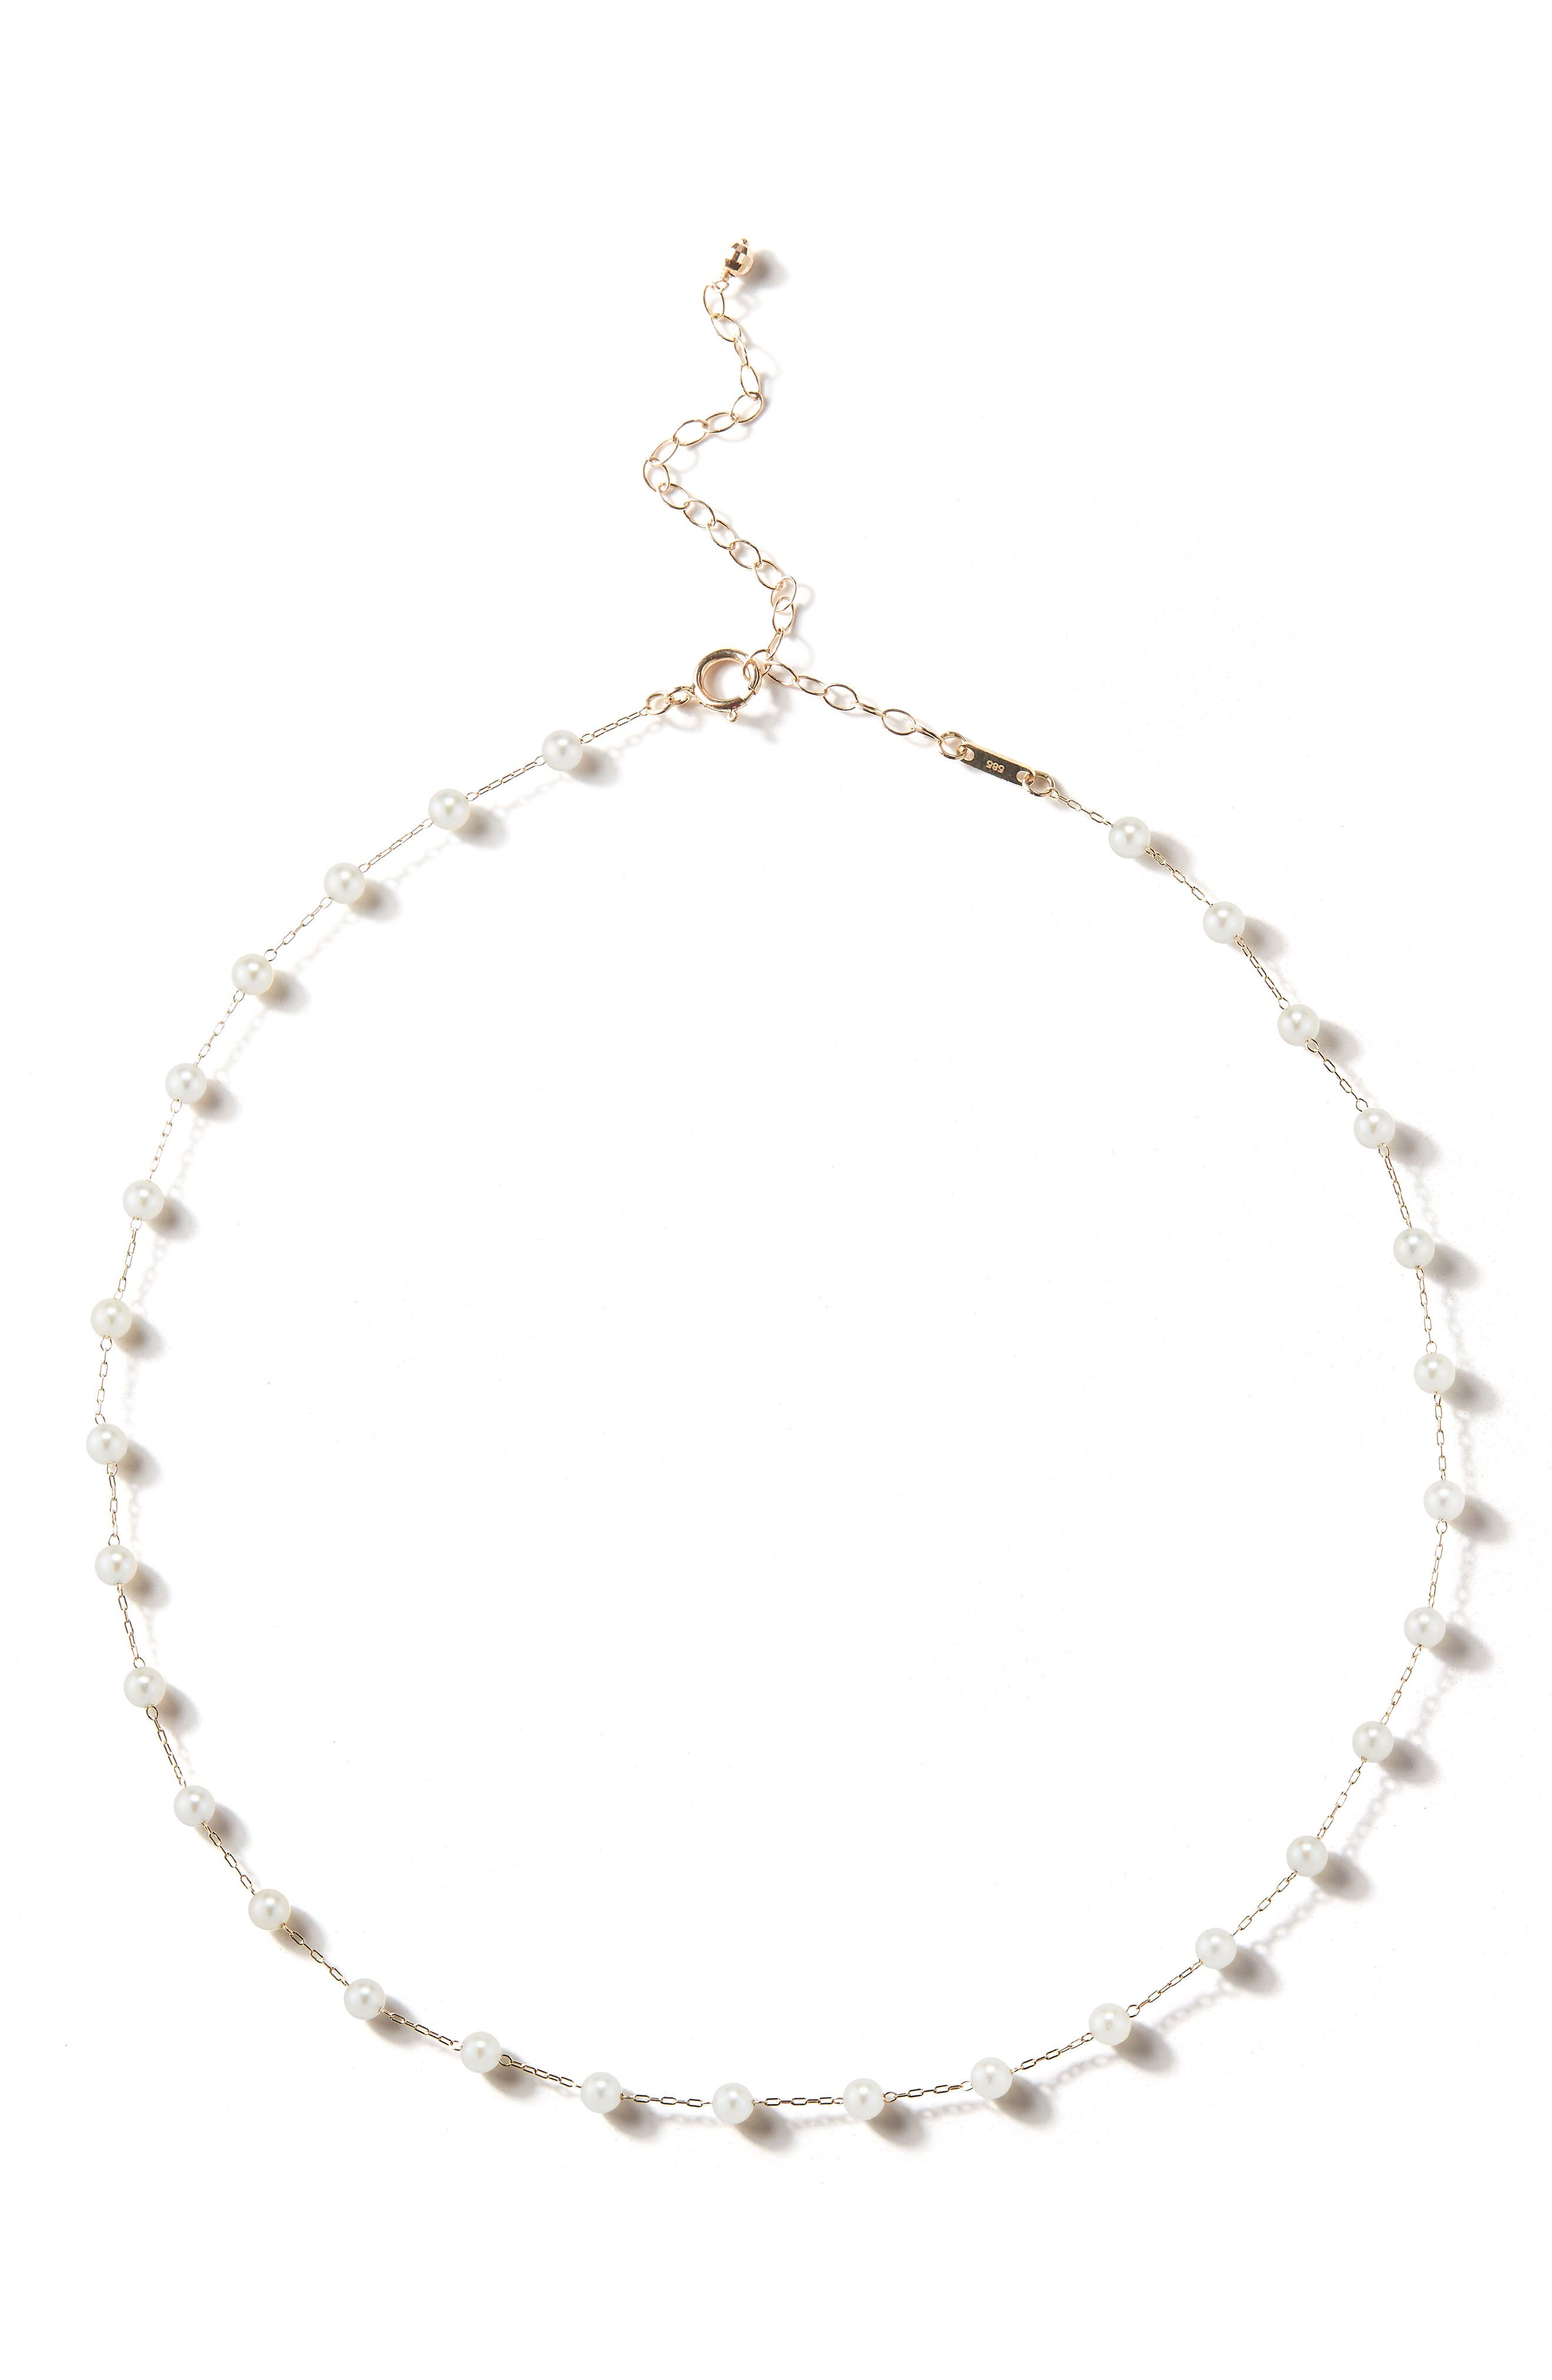 Pearl Choker Necklace,                         Main,                         color, Yellow Gold/ Pearl